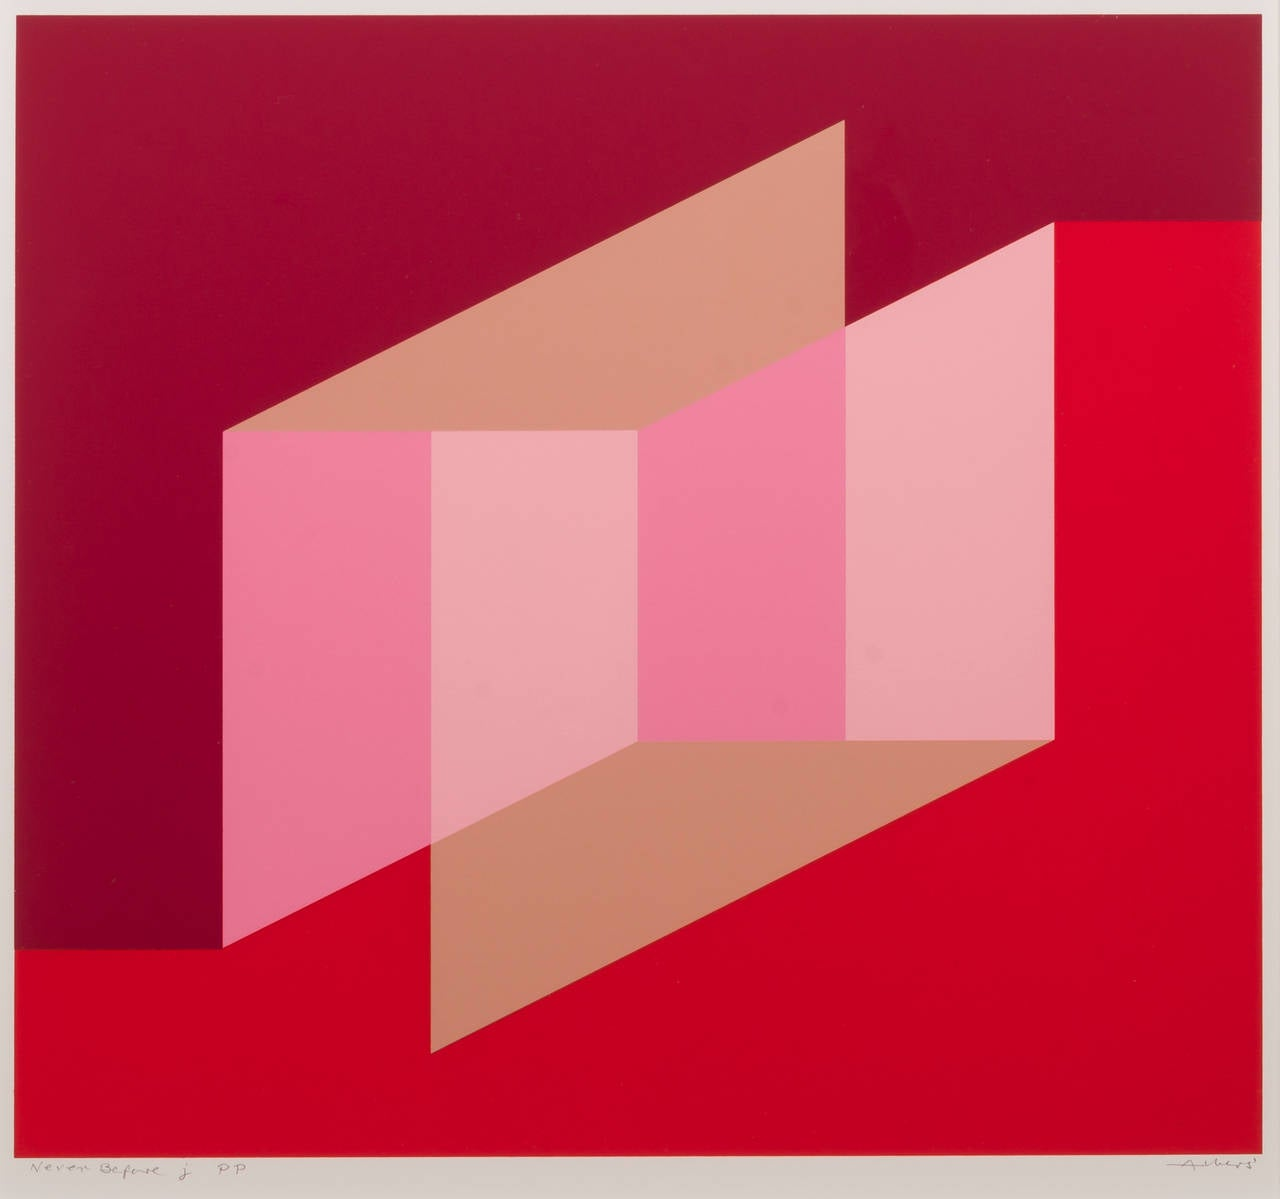 Josef Albers Never Before J Print For Sale At 1stdibs